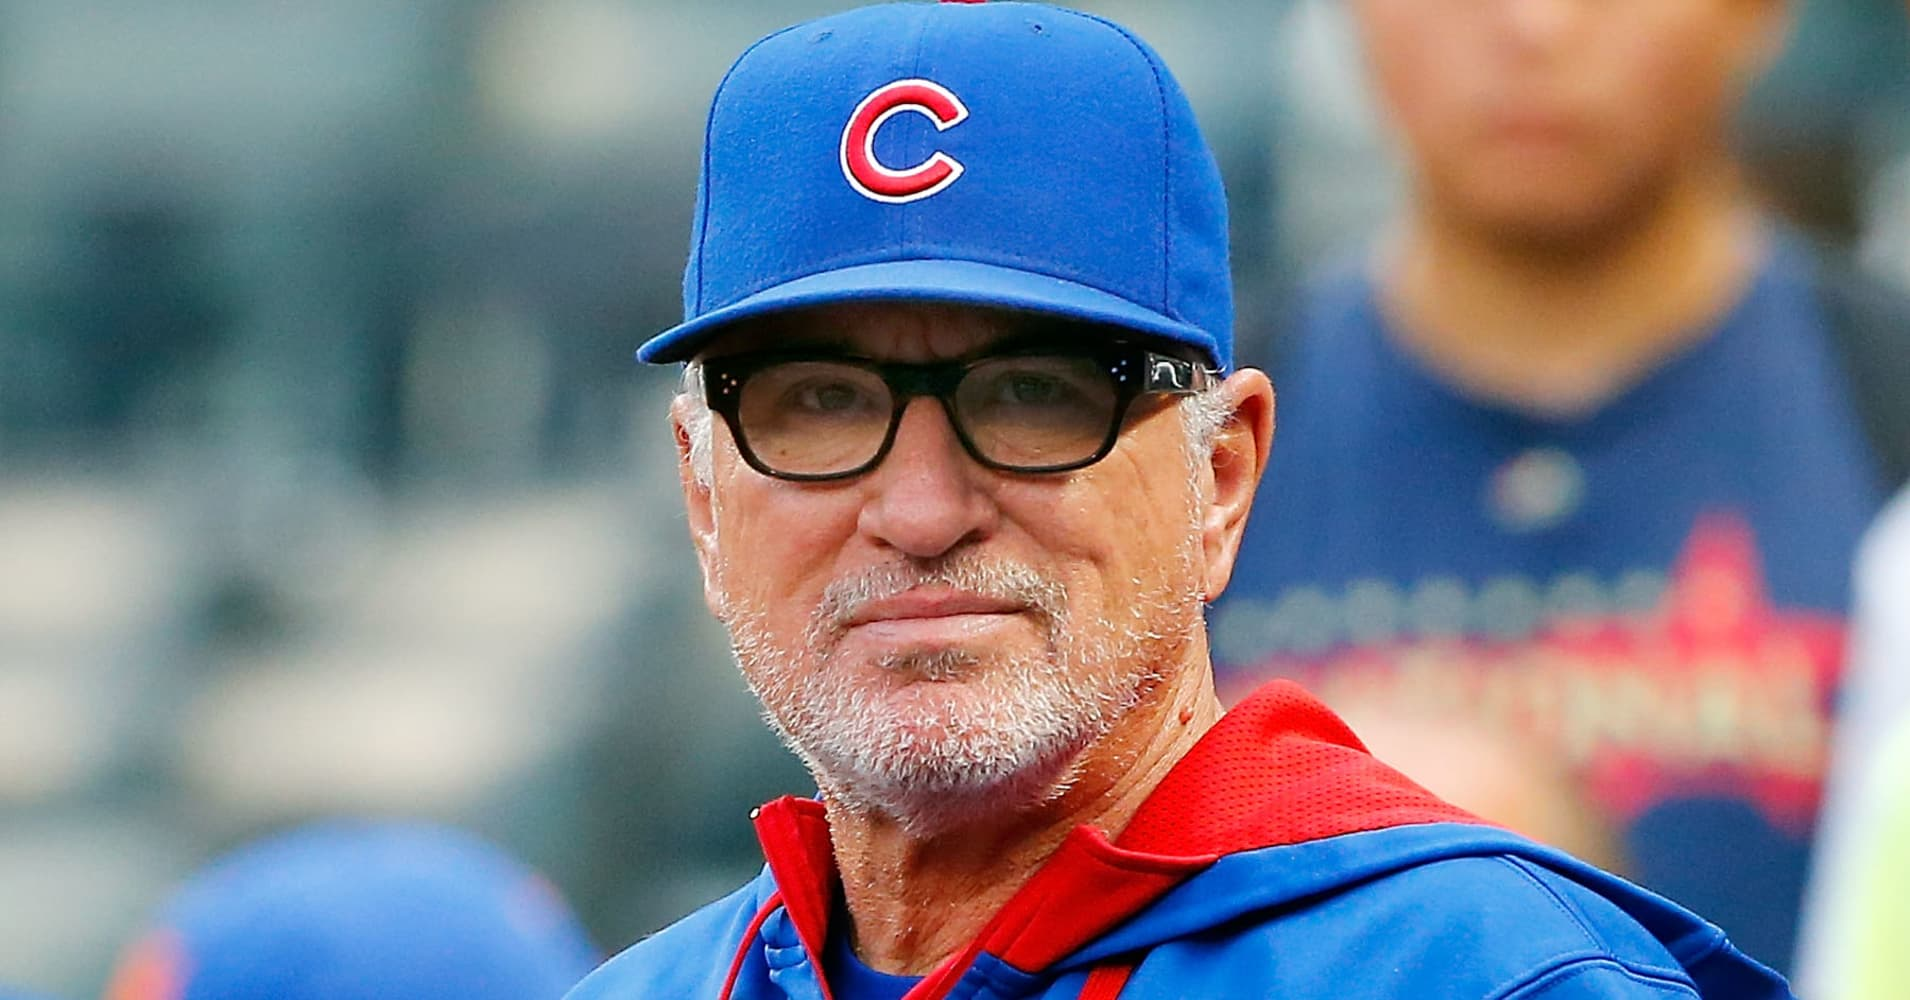 Chicago Cubs manager Joe Maddon reveals the book he says is helping him manage millennial players